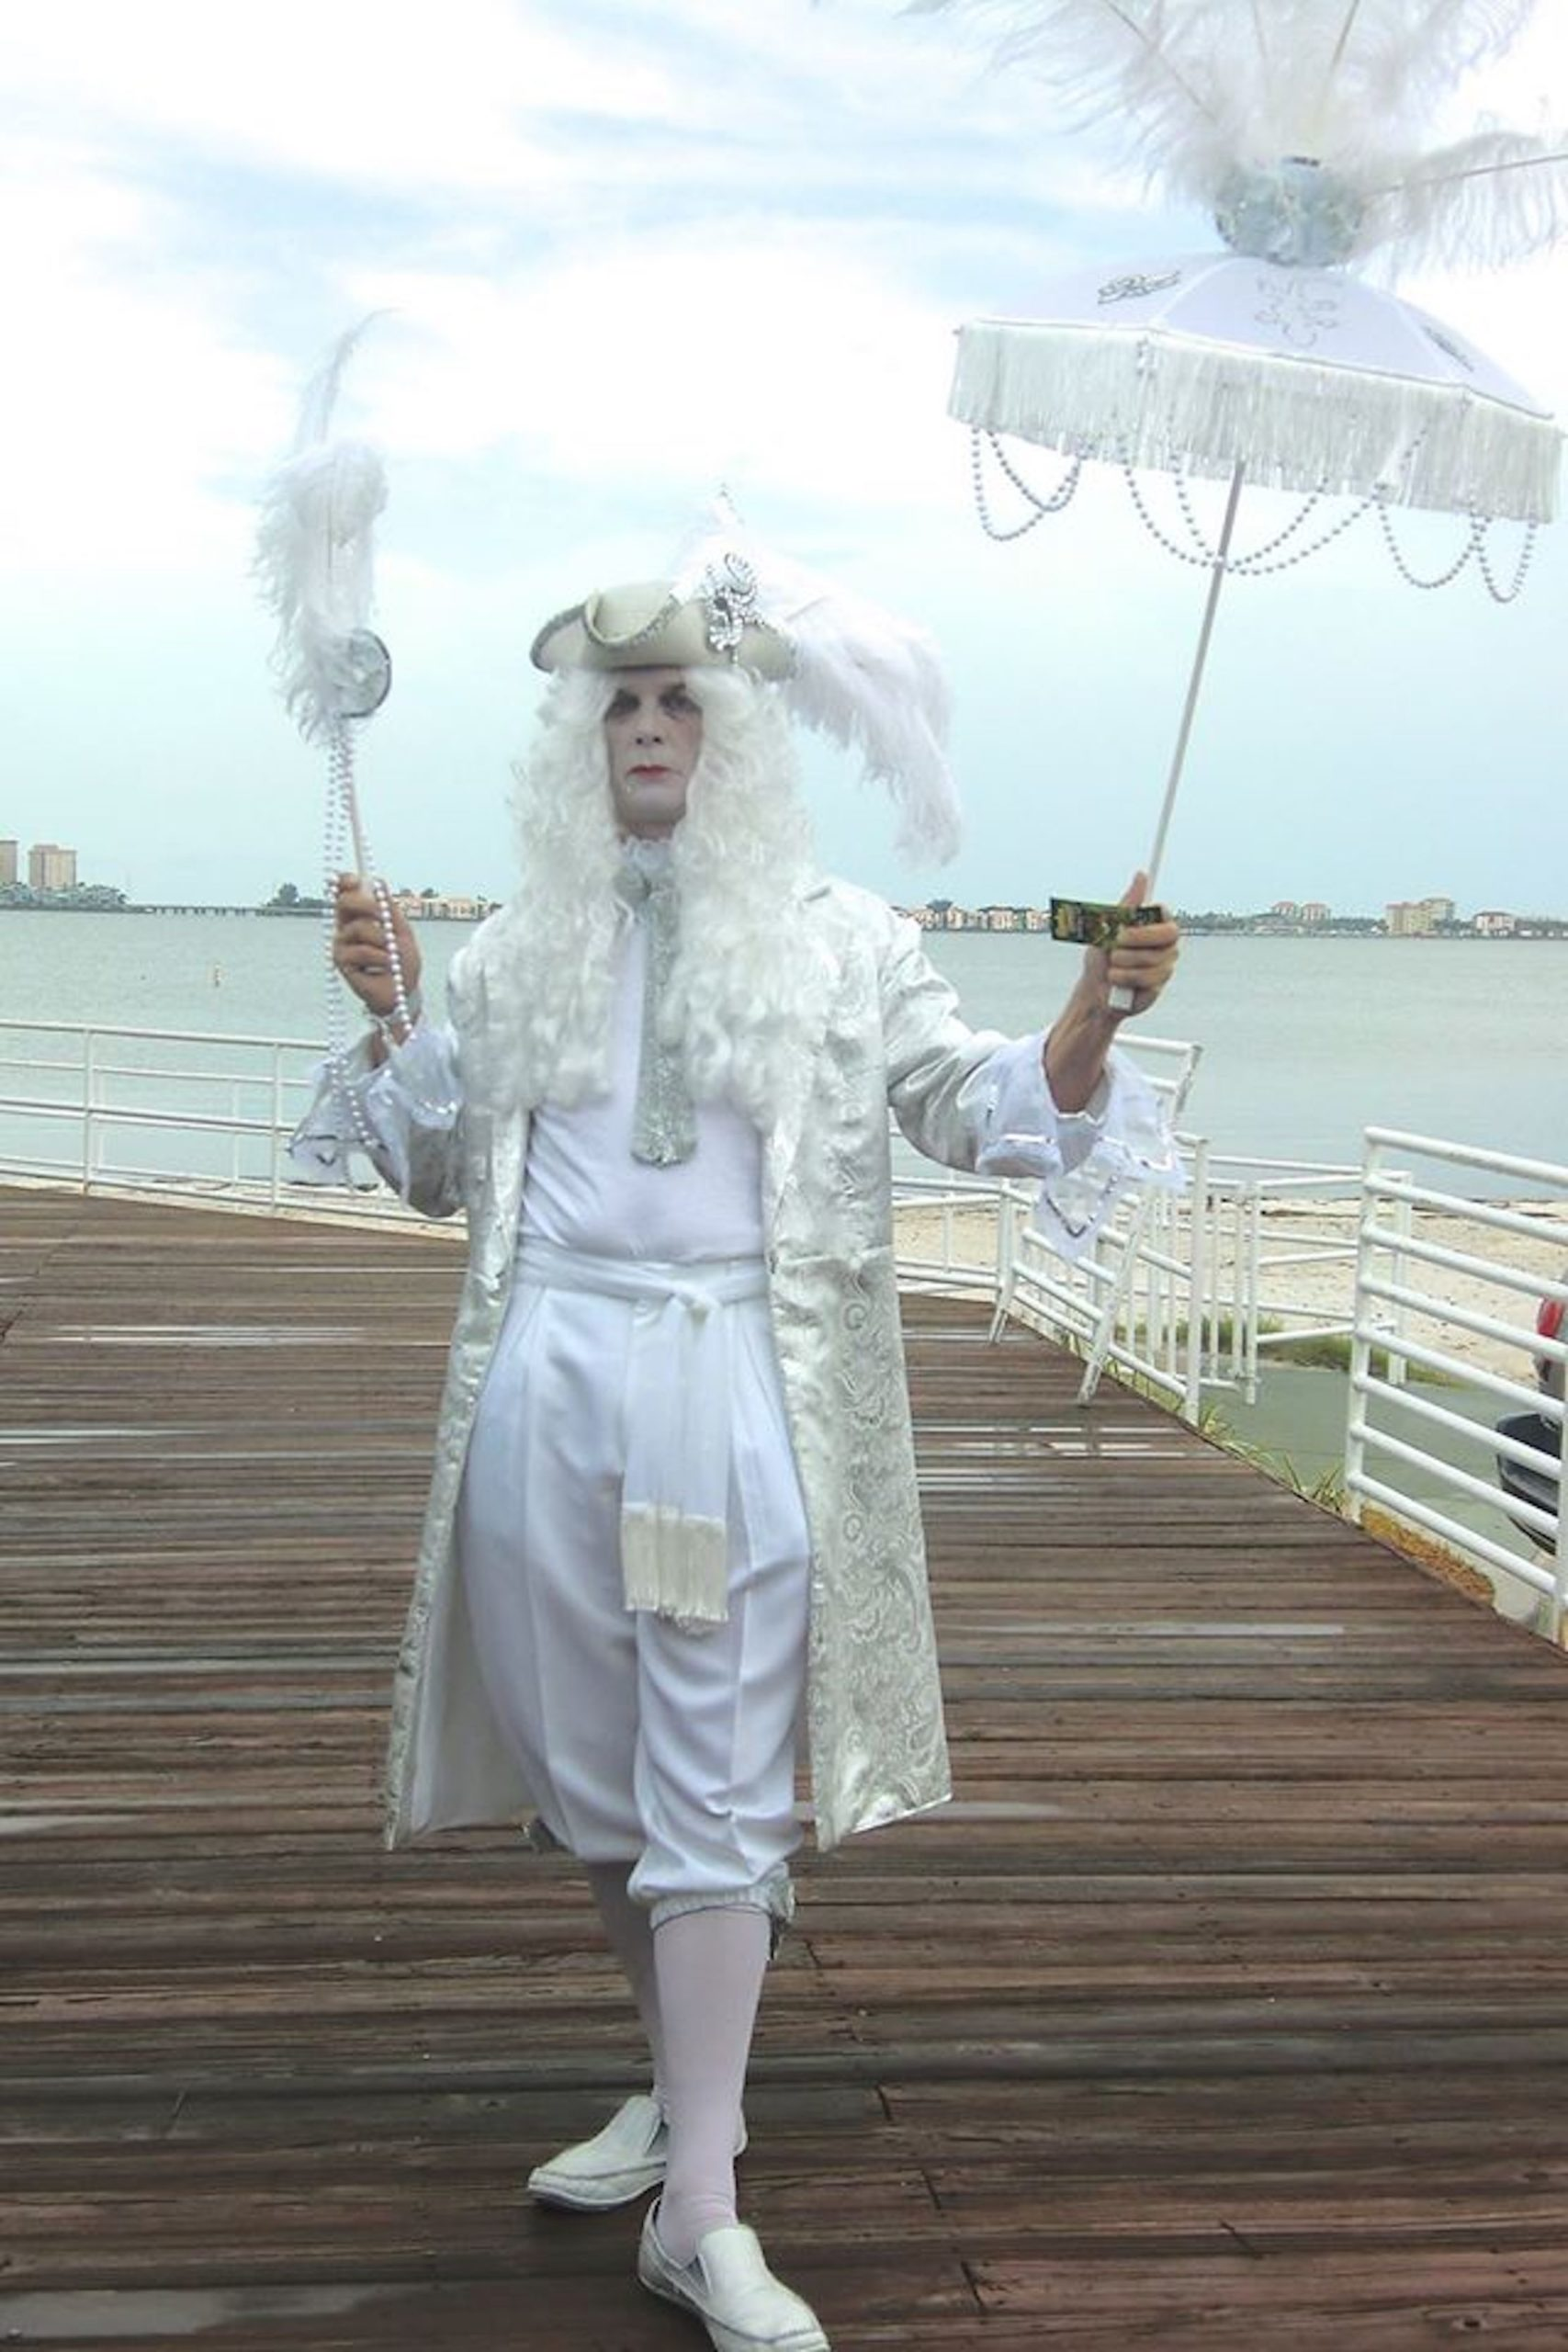 A man in an all-white 18th Century costume with white umbrella and long white wig in front of water.